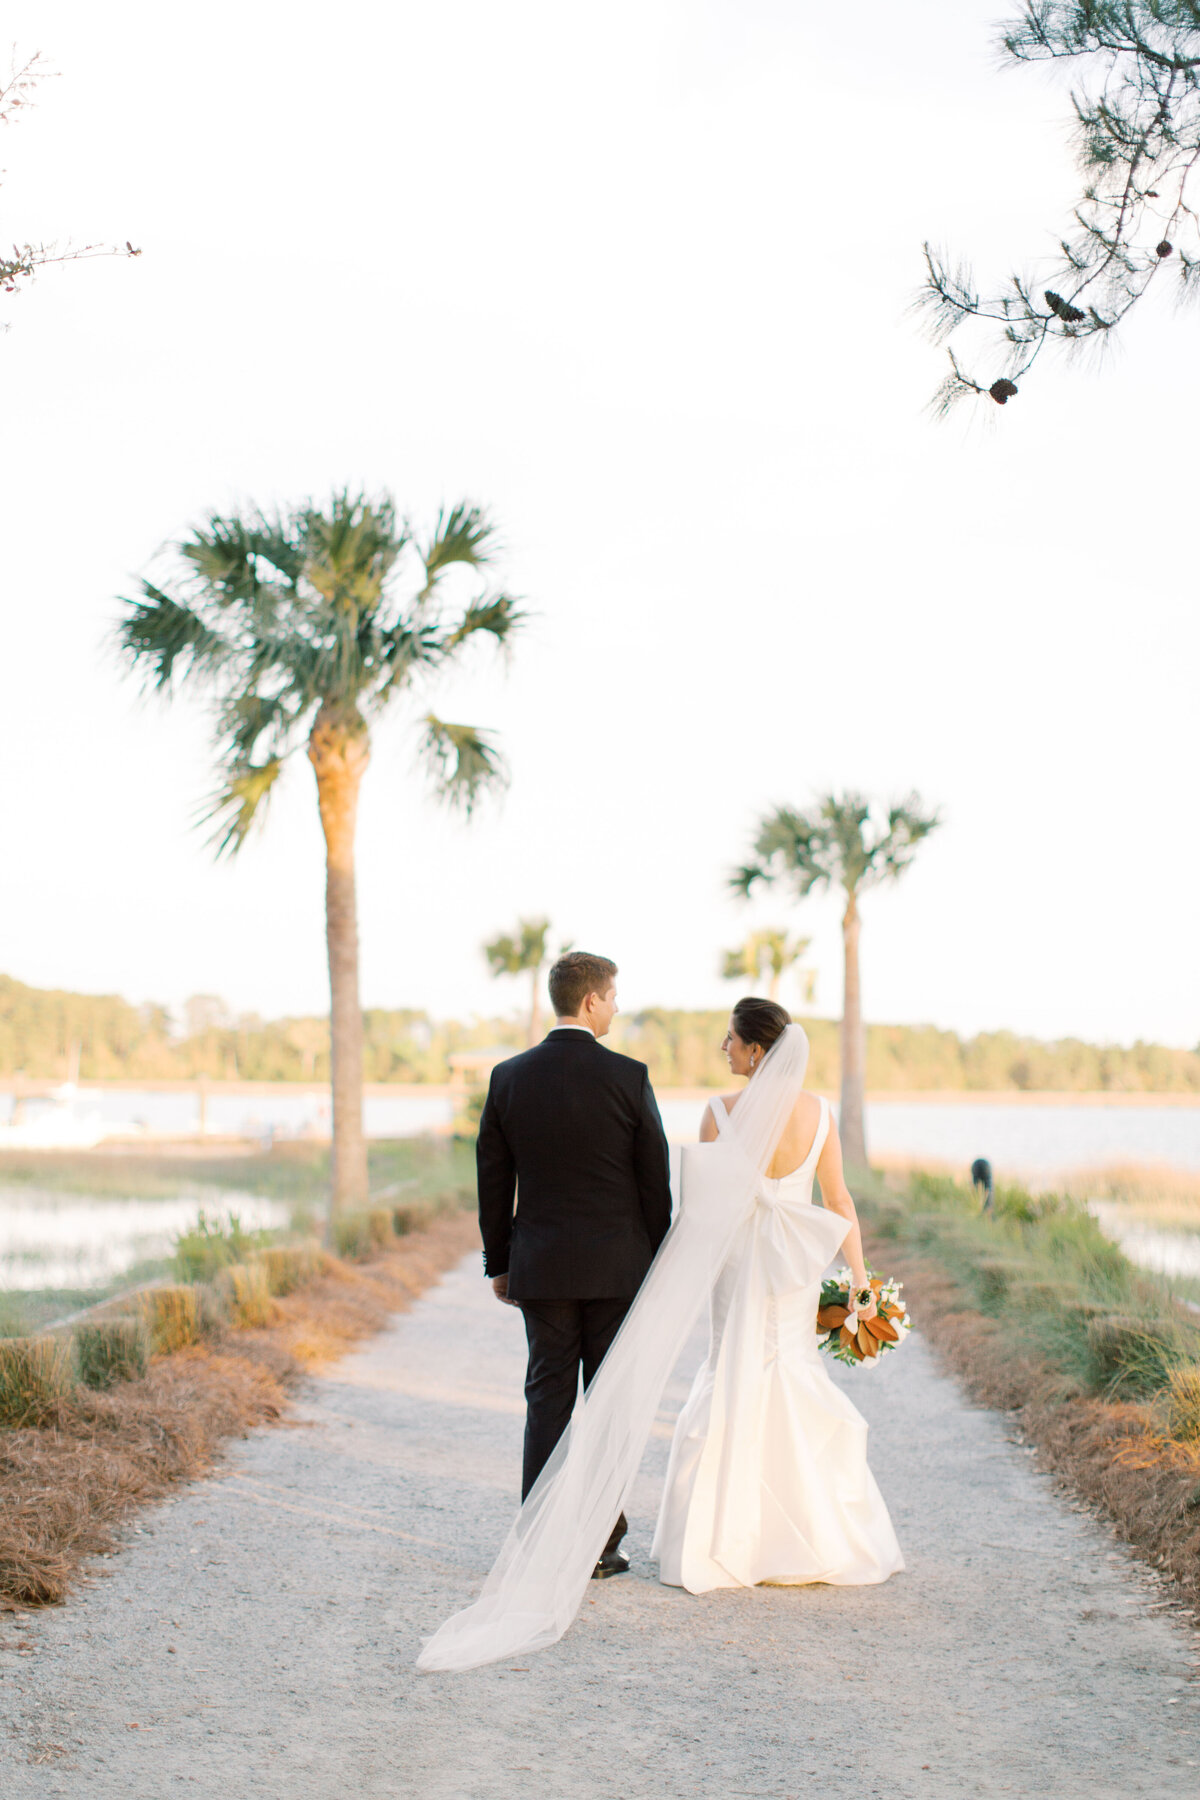 Powell_Oldfield_River_Club_Bluffton_South_Carolina_Beaufort_Savannah_Wedding_Jacksonville_Florida_Devon_Donnahoo_Photography_0918